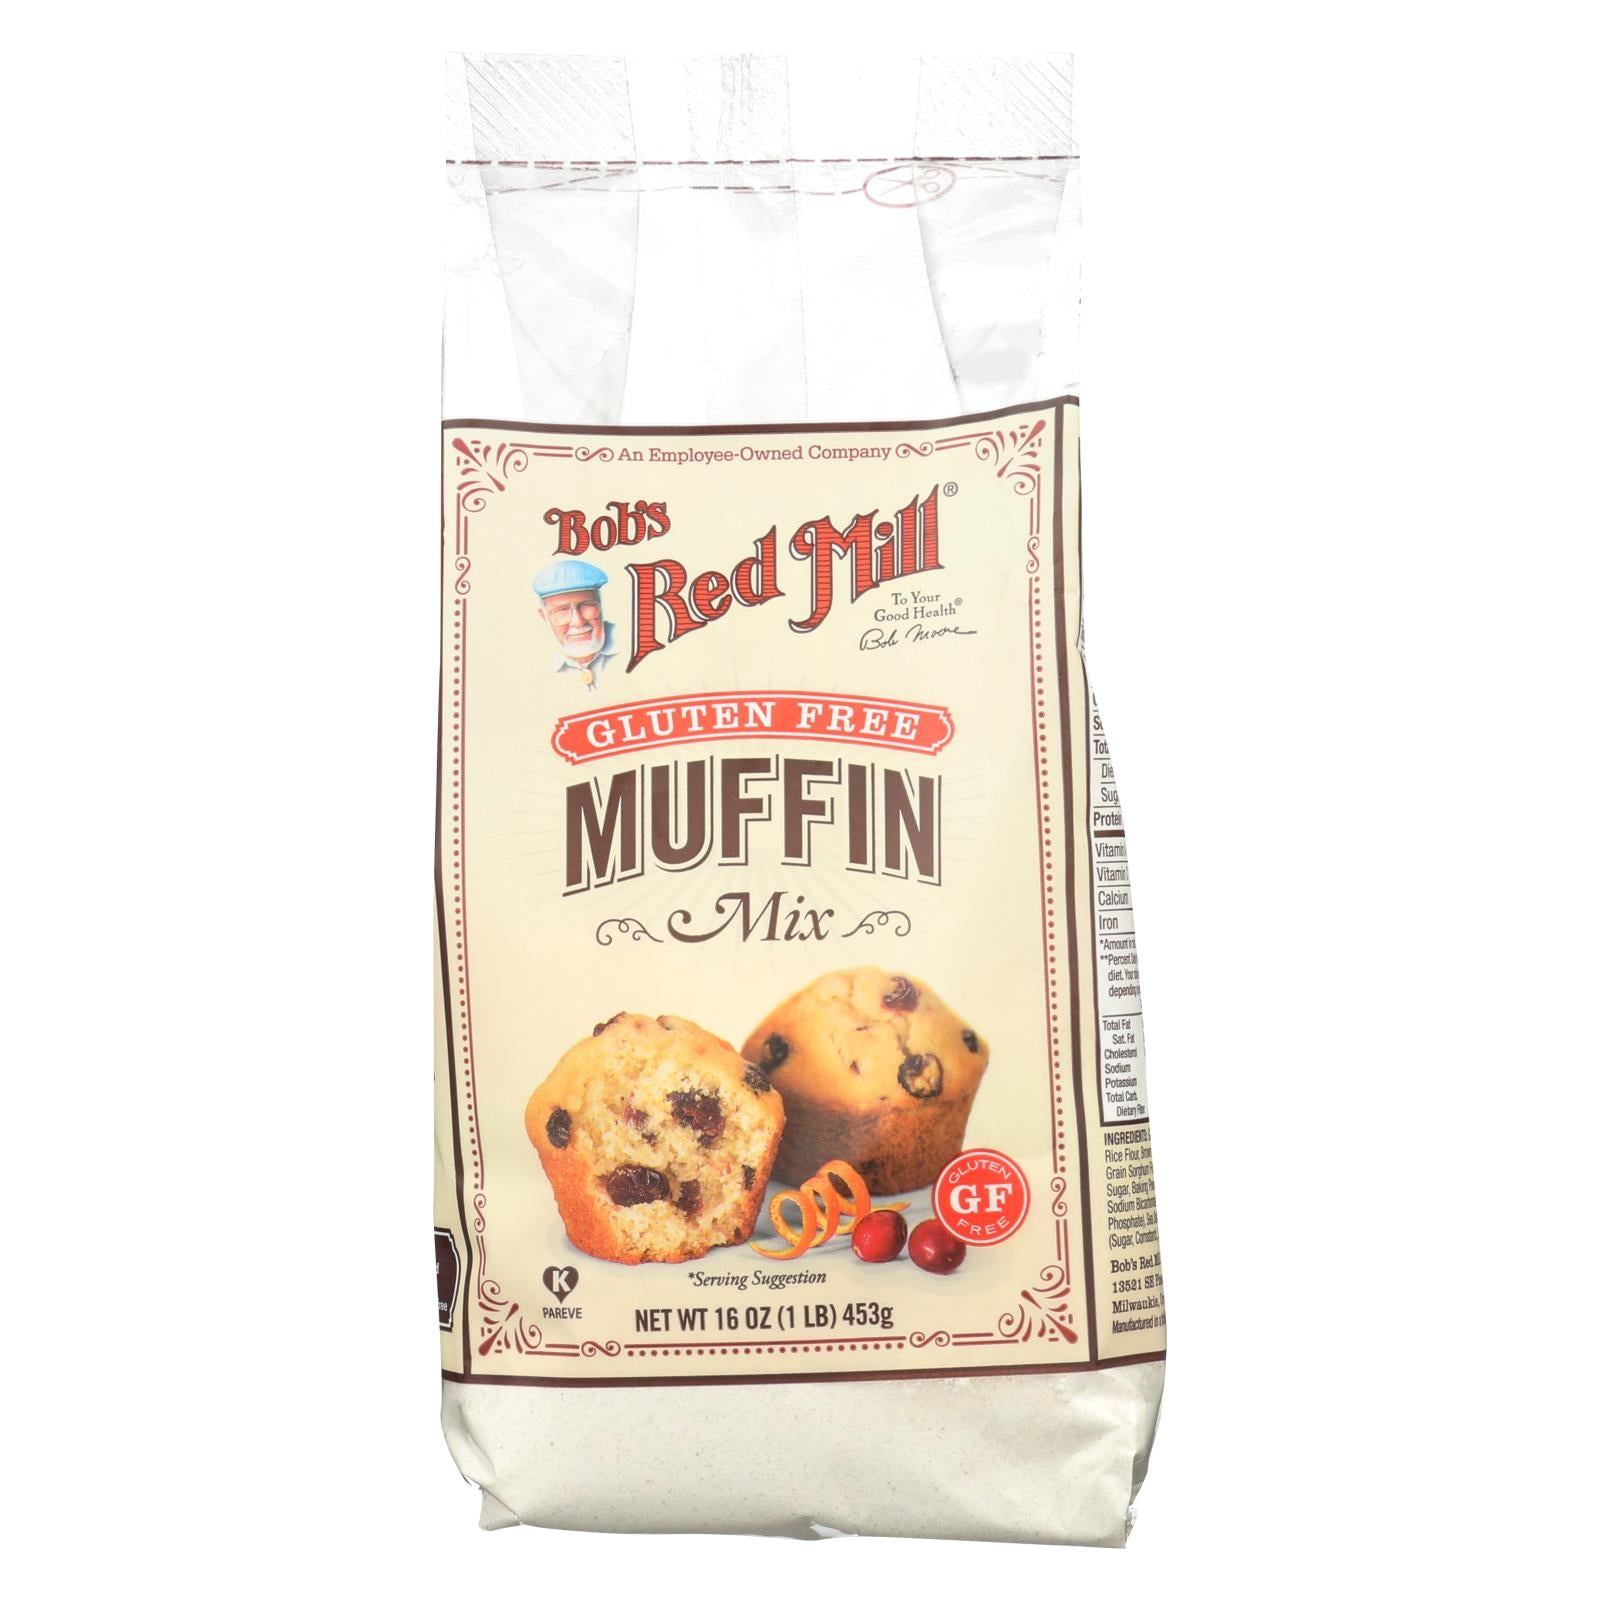 Bob's Red Mill Gluten Free Muffin Mix - 16 Oz - Case Of 4 HG1738475